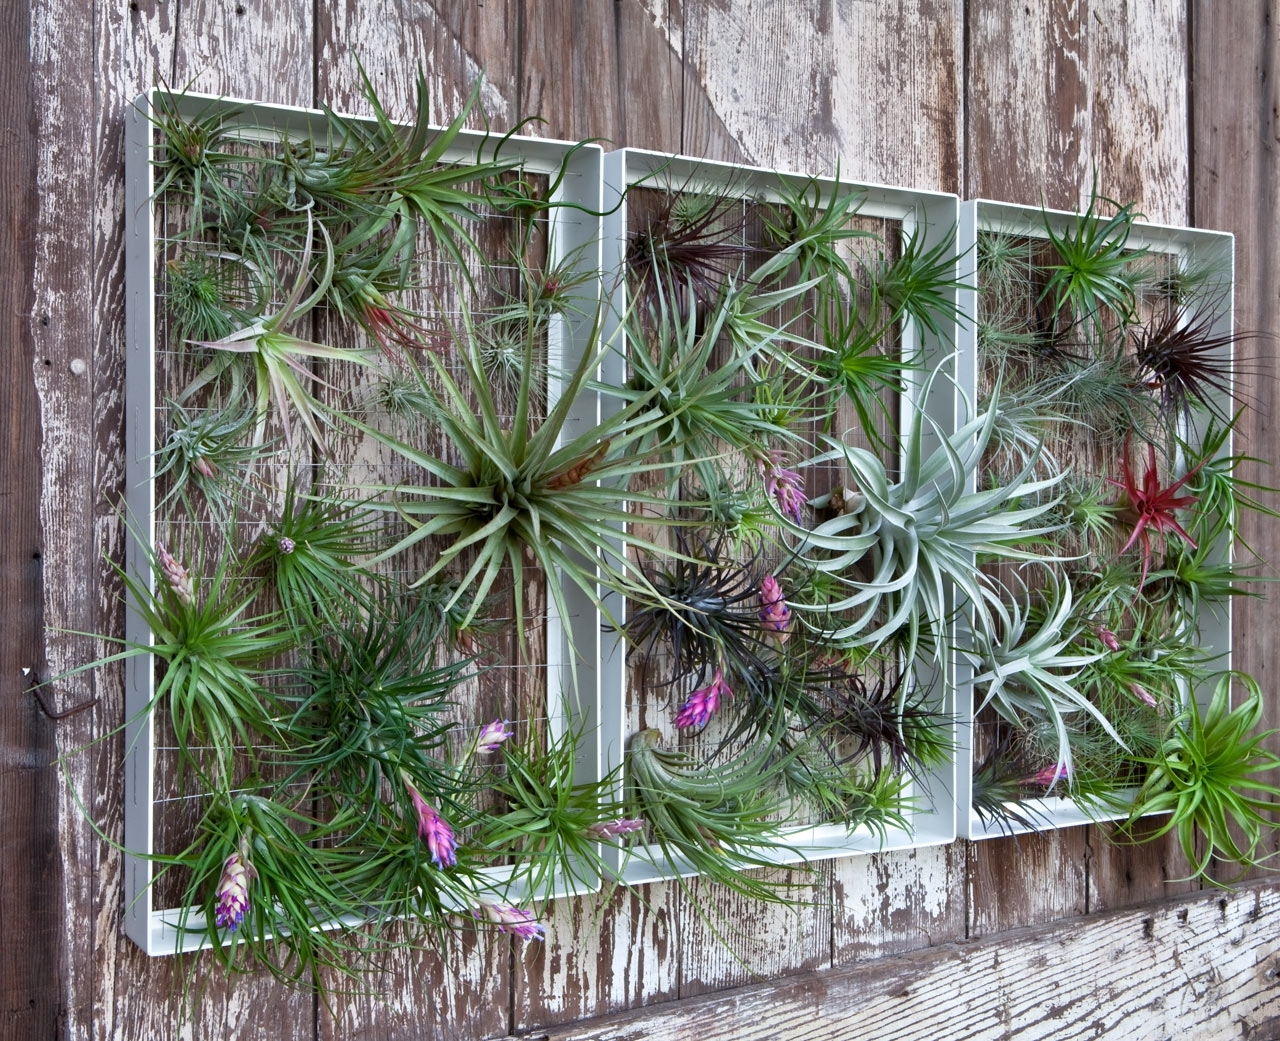 Decorative Outdoor Wall Decor | Trellischicago With Regard To Most Recent Garden Wall Accents (View 5 of 15)